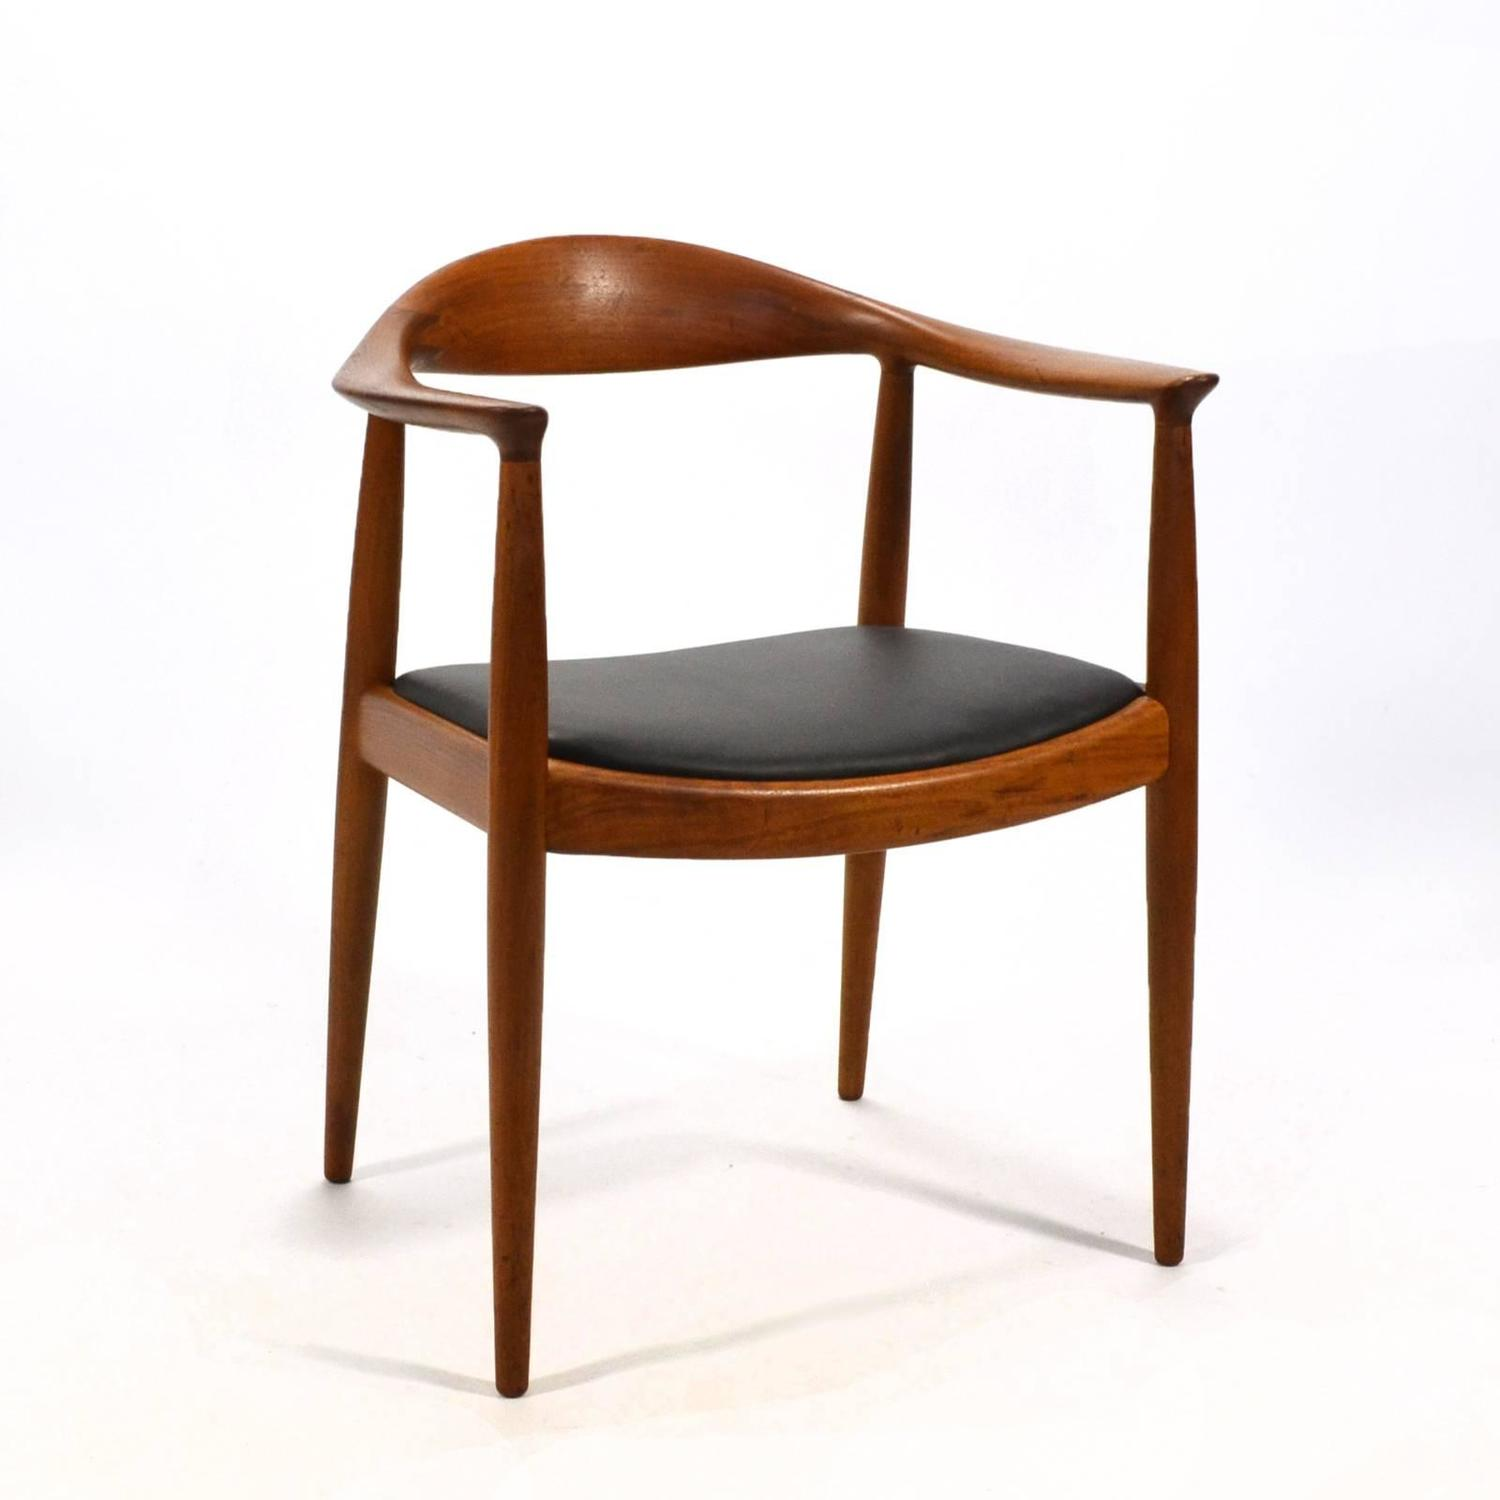 hans wegner round chair the chair by johannes hansen for sale at 1stdibs. Black Bedroom Furniture Sets. Home Design Ideas